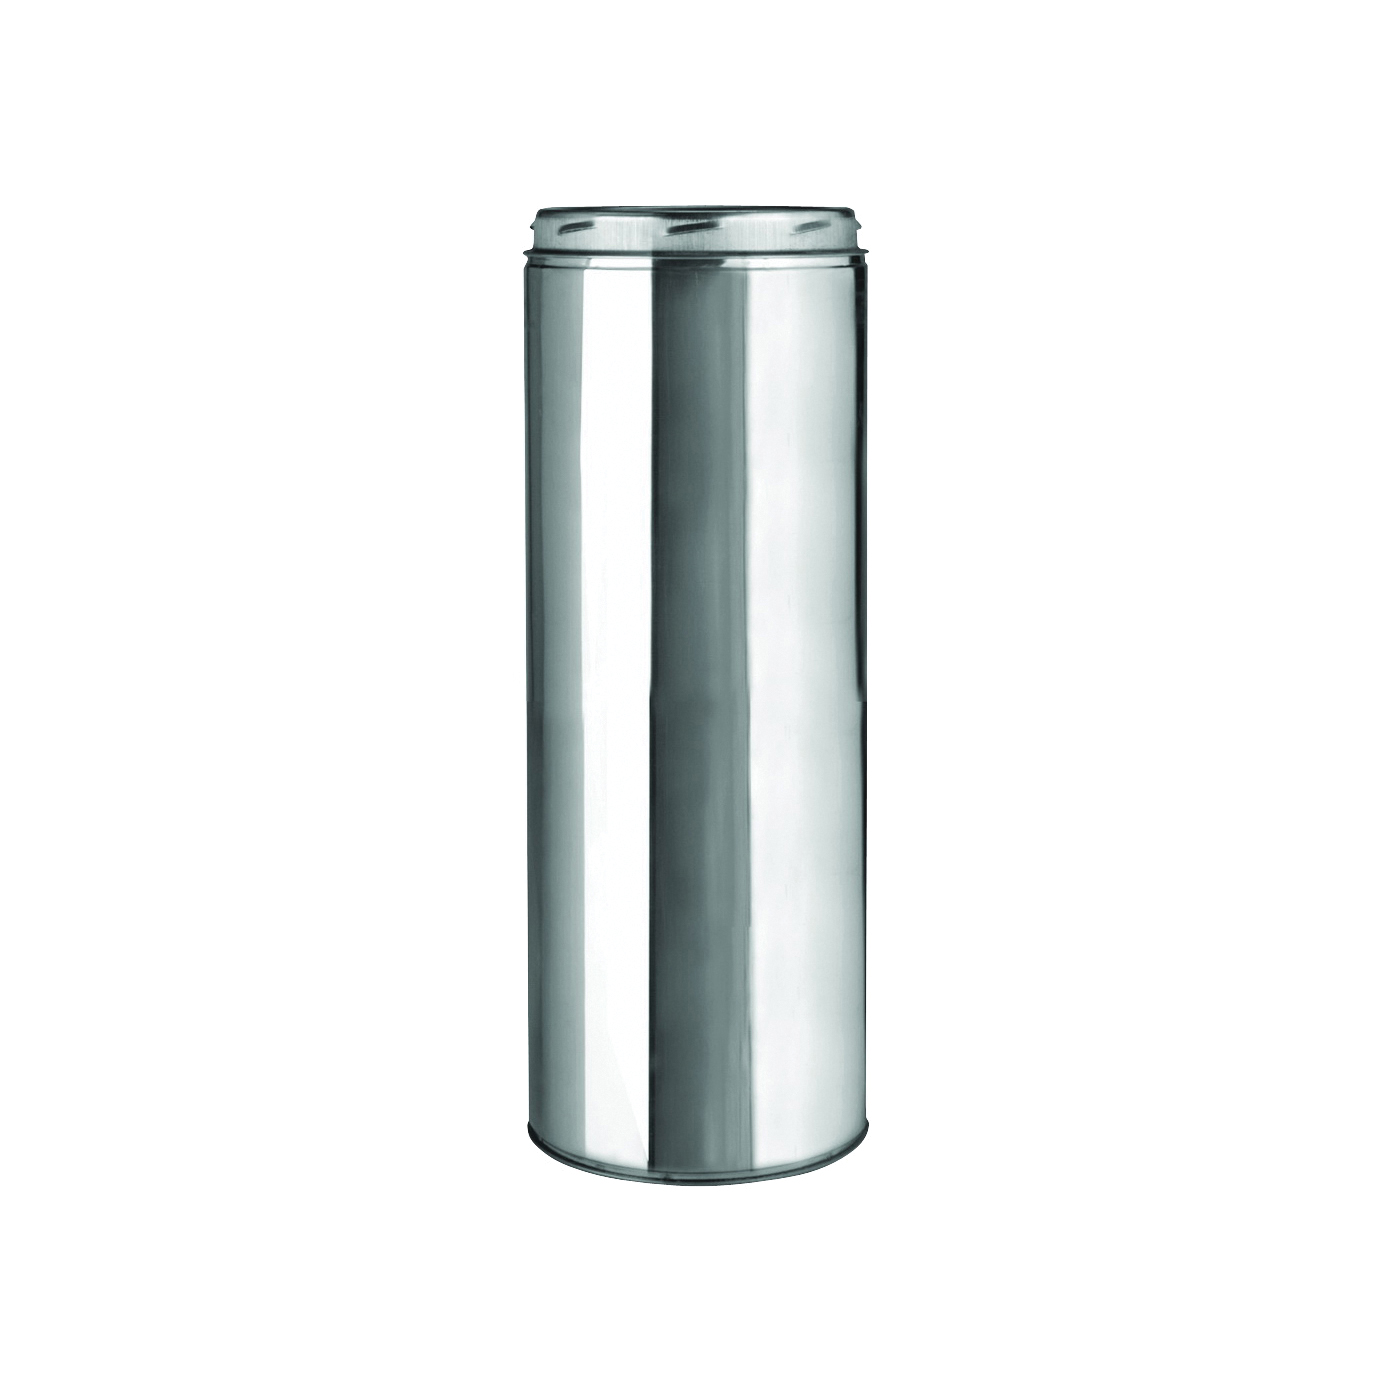 Picture of SELKIRK 206018 Chimney Pipe, 8 in OD, 18 in L, Stainless Steel